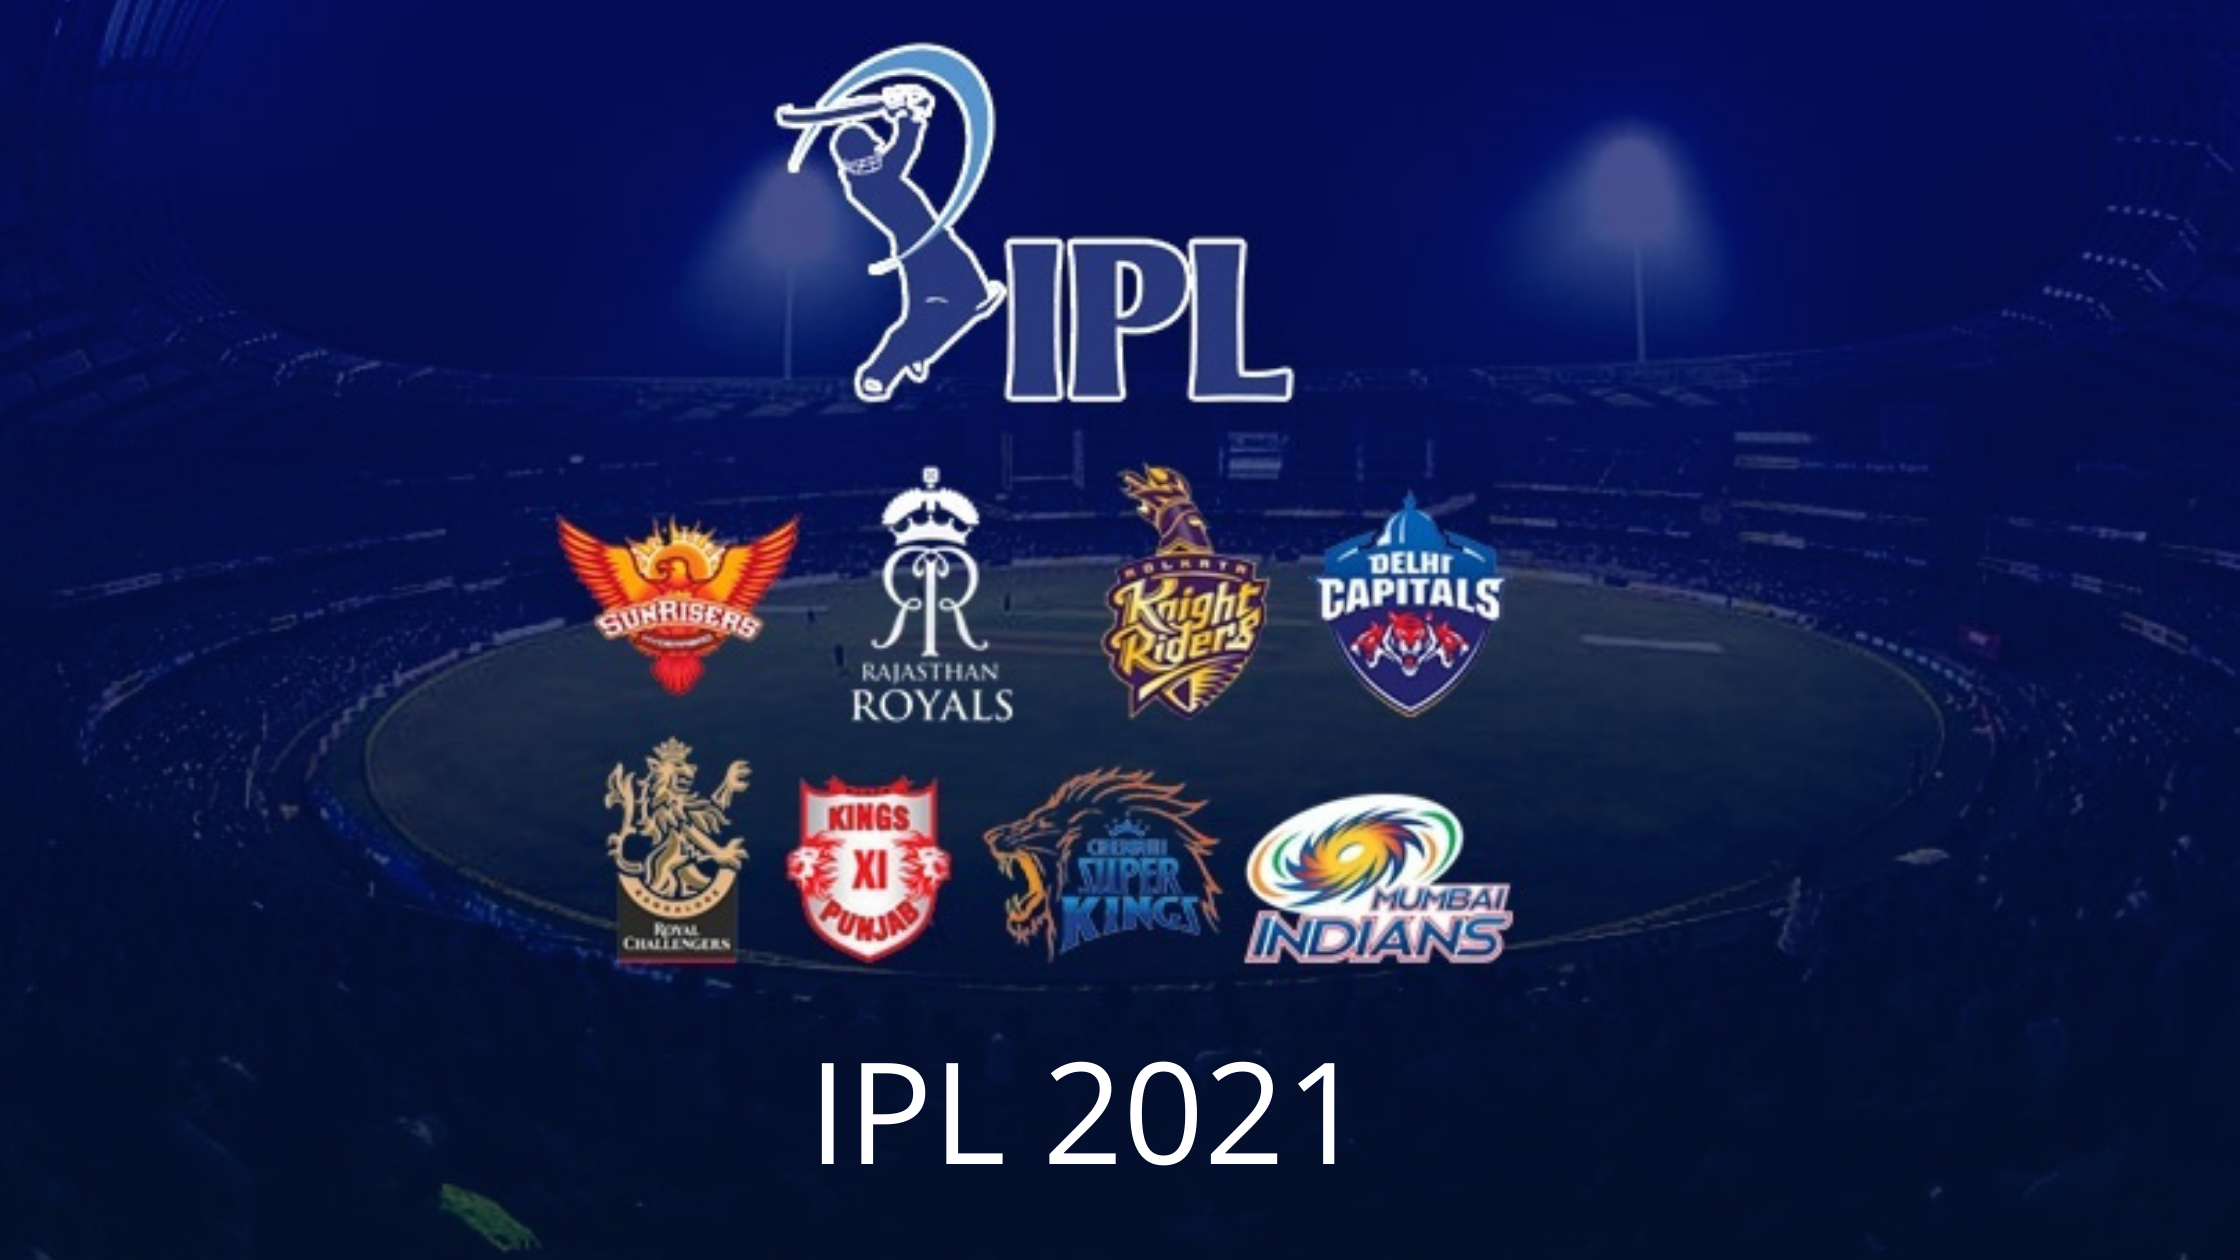 Vivo IPL Live Streaming Channels in India 2021